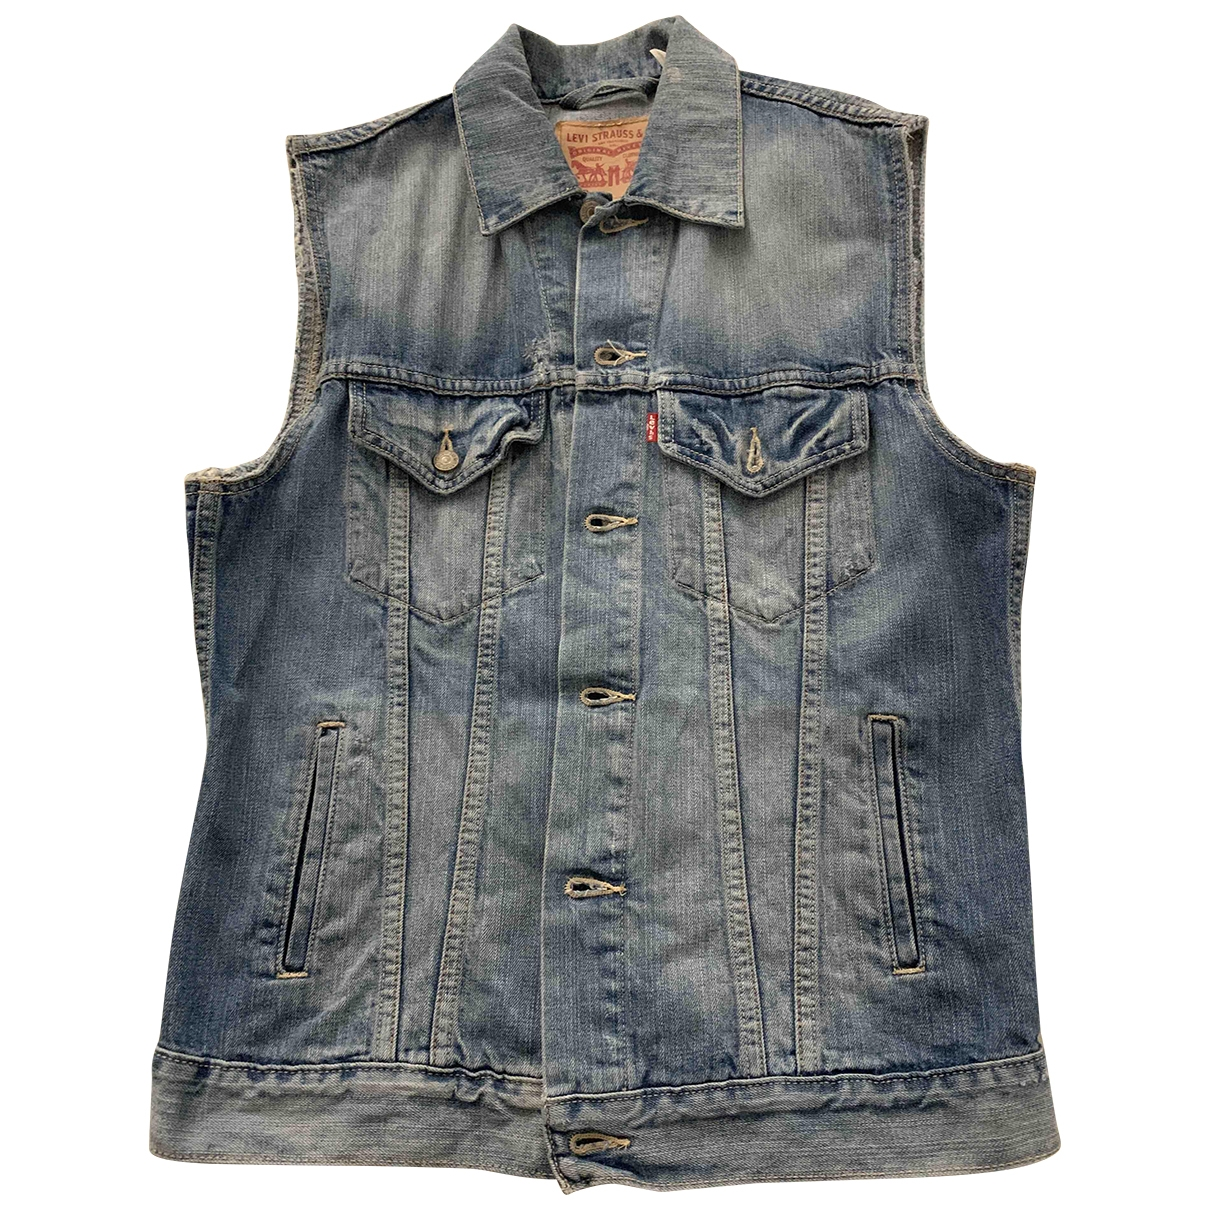 Levi's \N Blue Denim - Jeans jacket  for Men M International